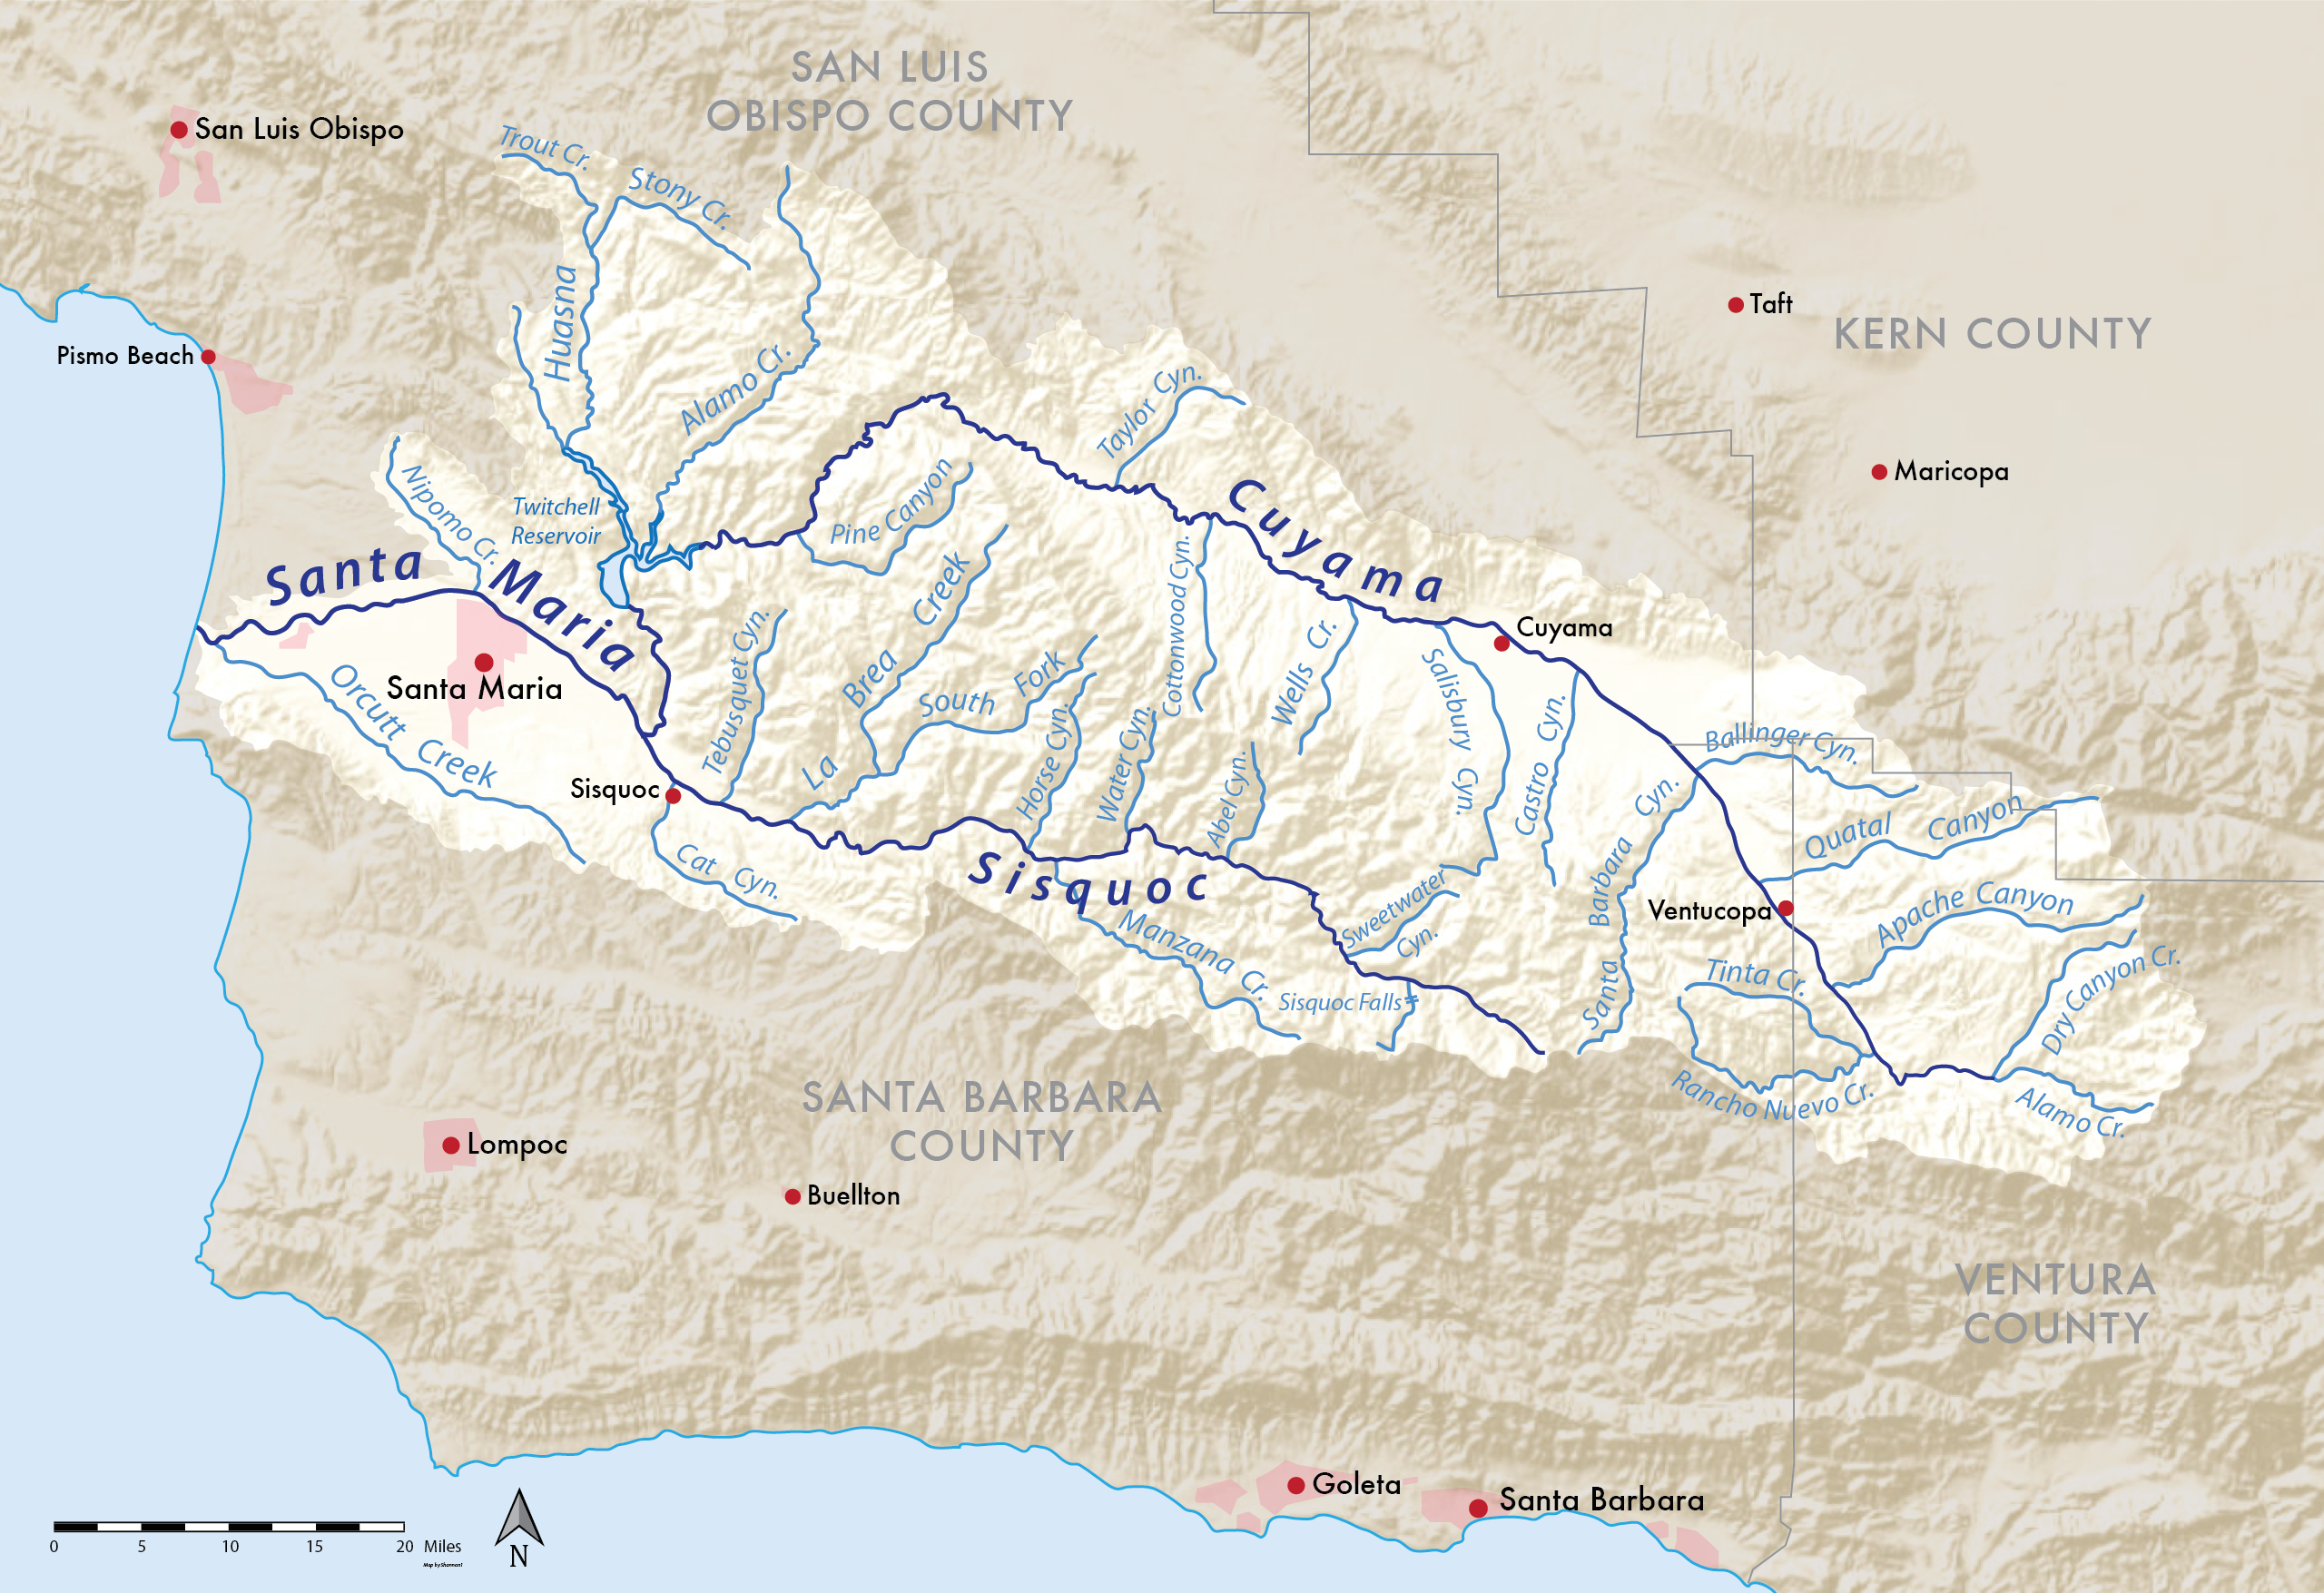 fish, flows, and 5937 – legal challenges on the santa maria river